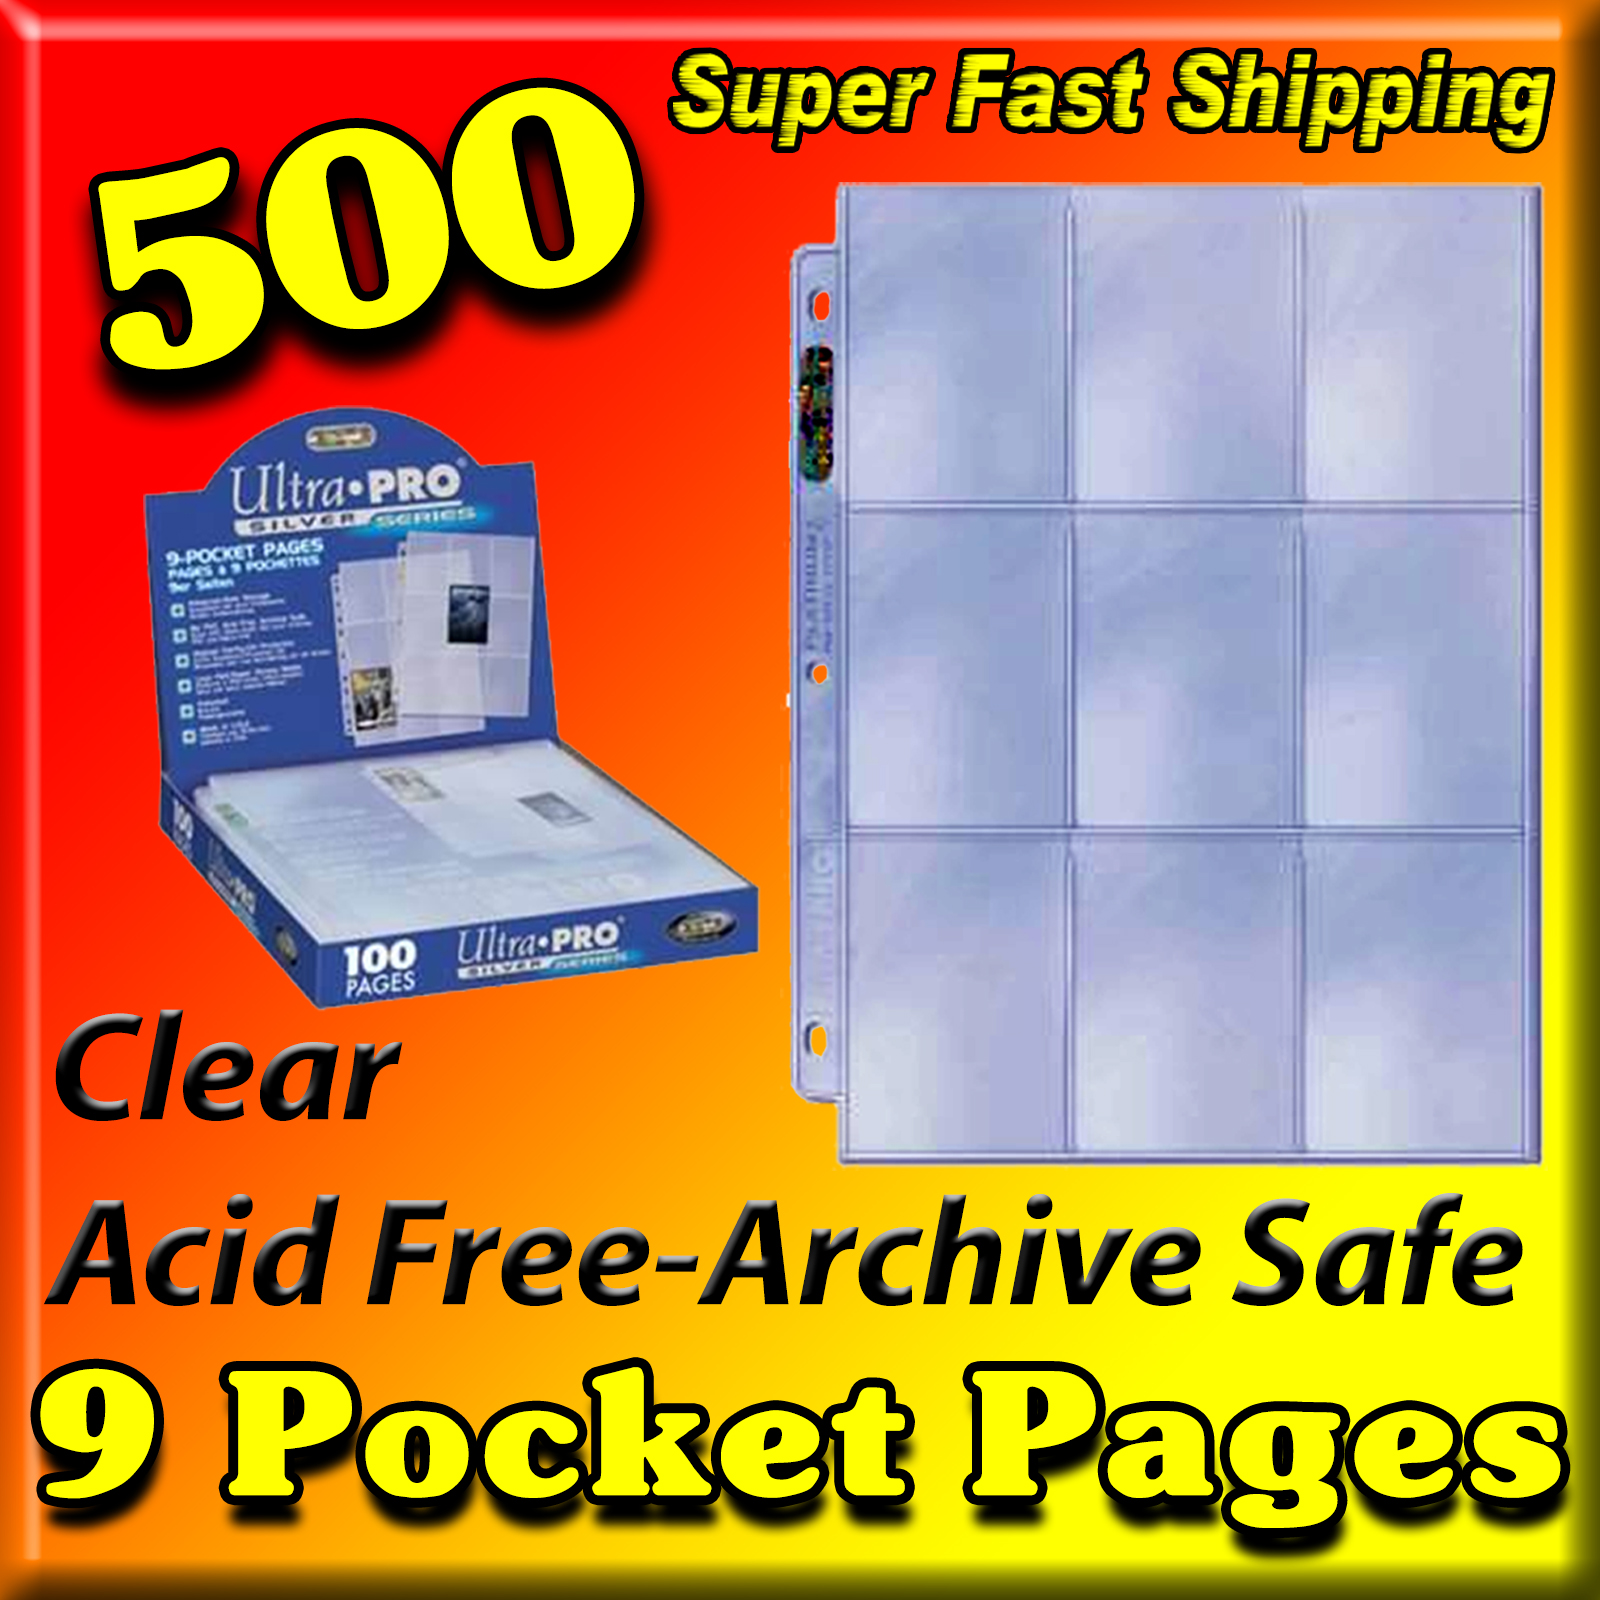 Ultra Pro 9-Pocket Pages Silver Series -500- UNITED STATES ONLY